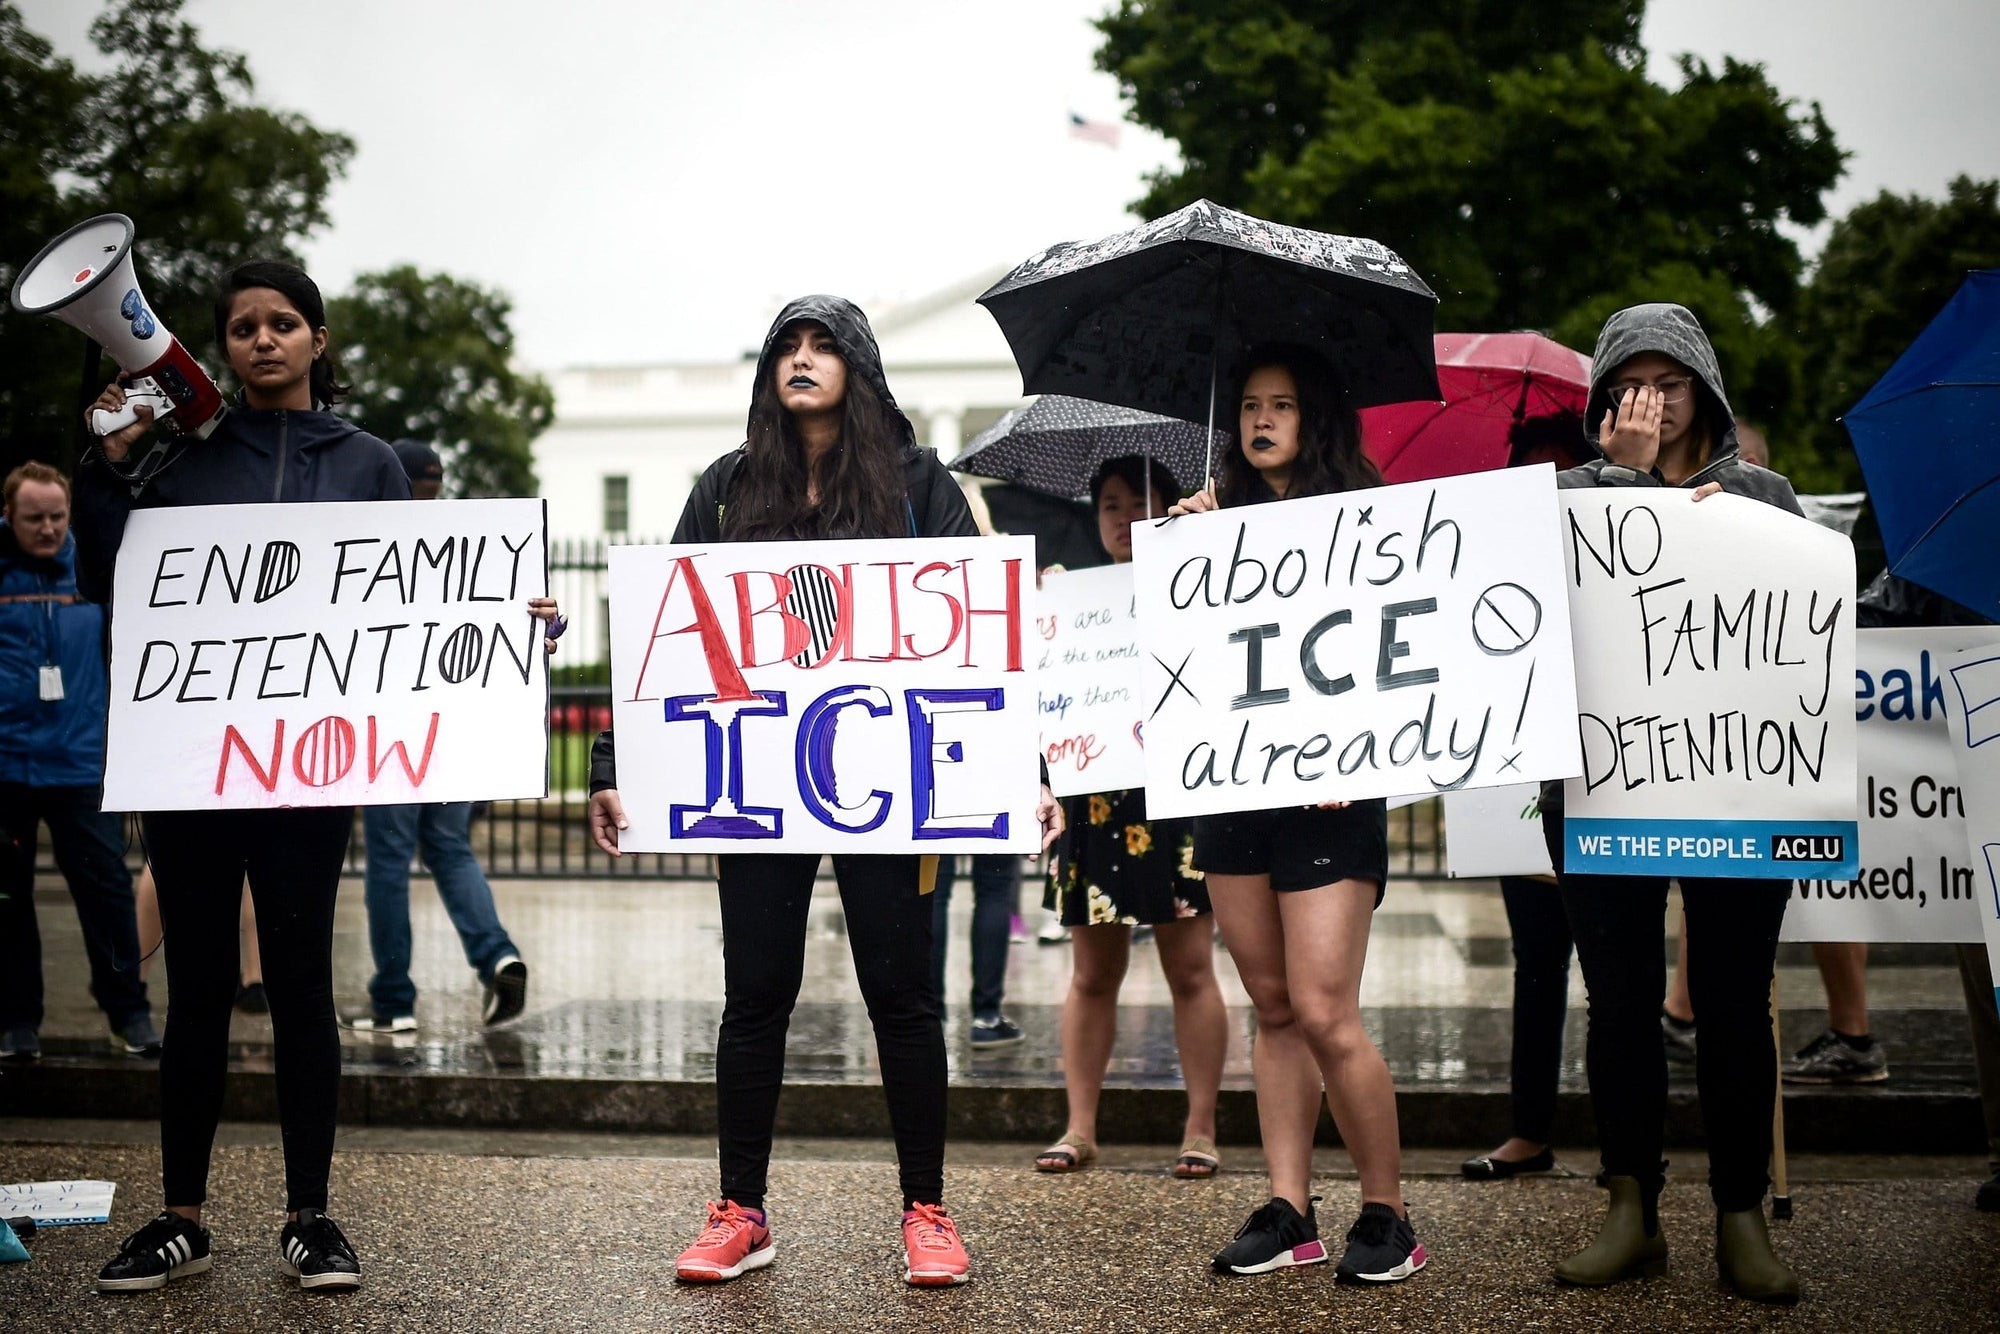 'Abolish ICE' Protestors To Rally Outside Warden's Home